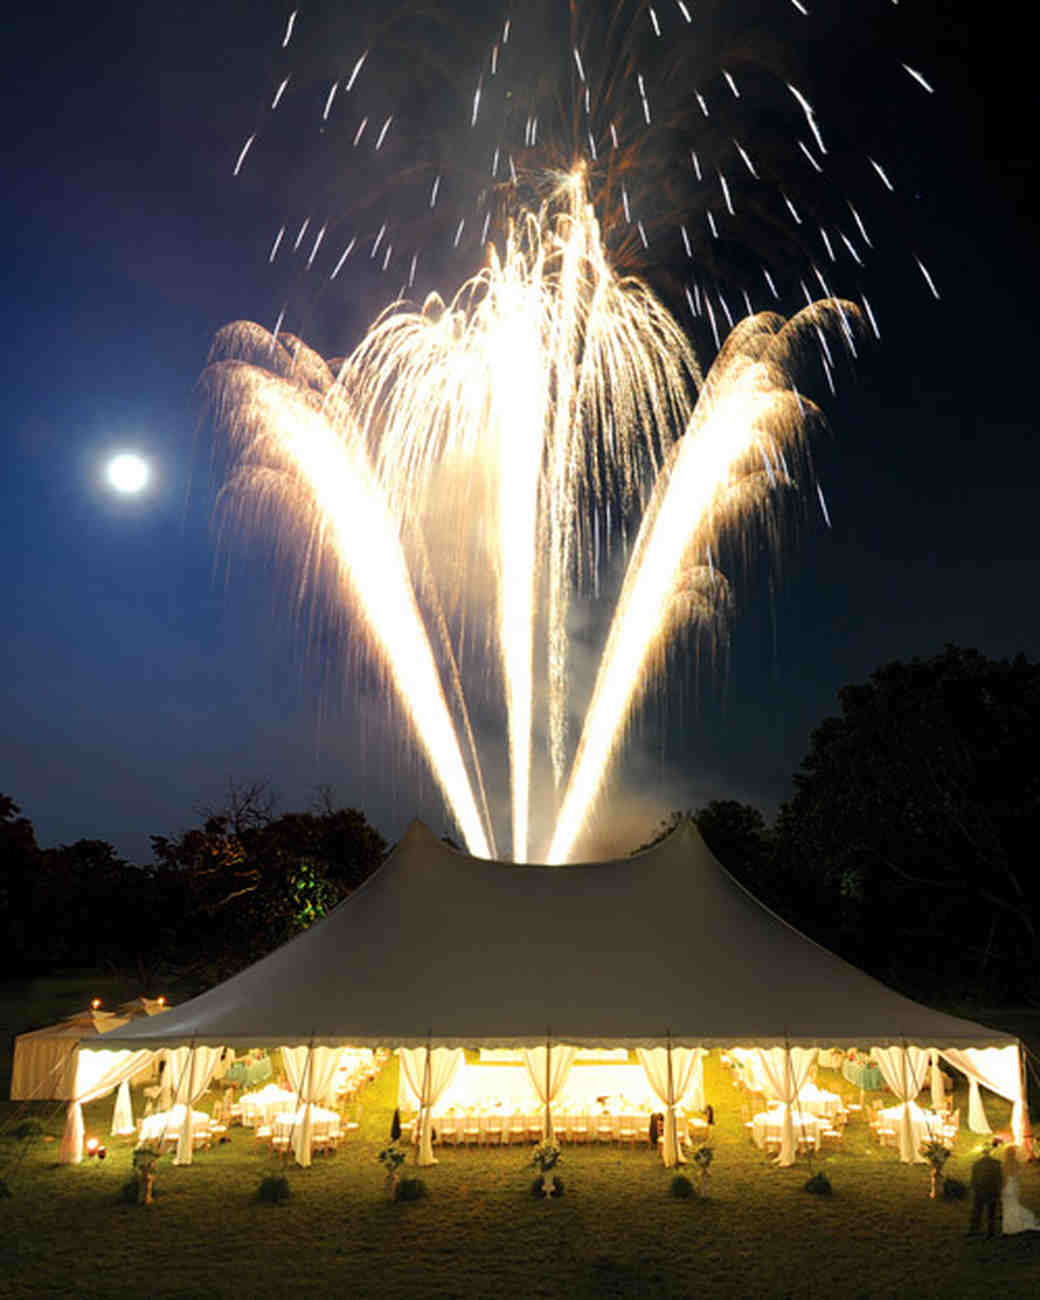 fireworks over wedding reception tent